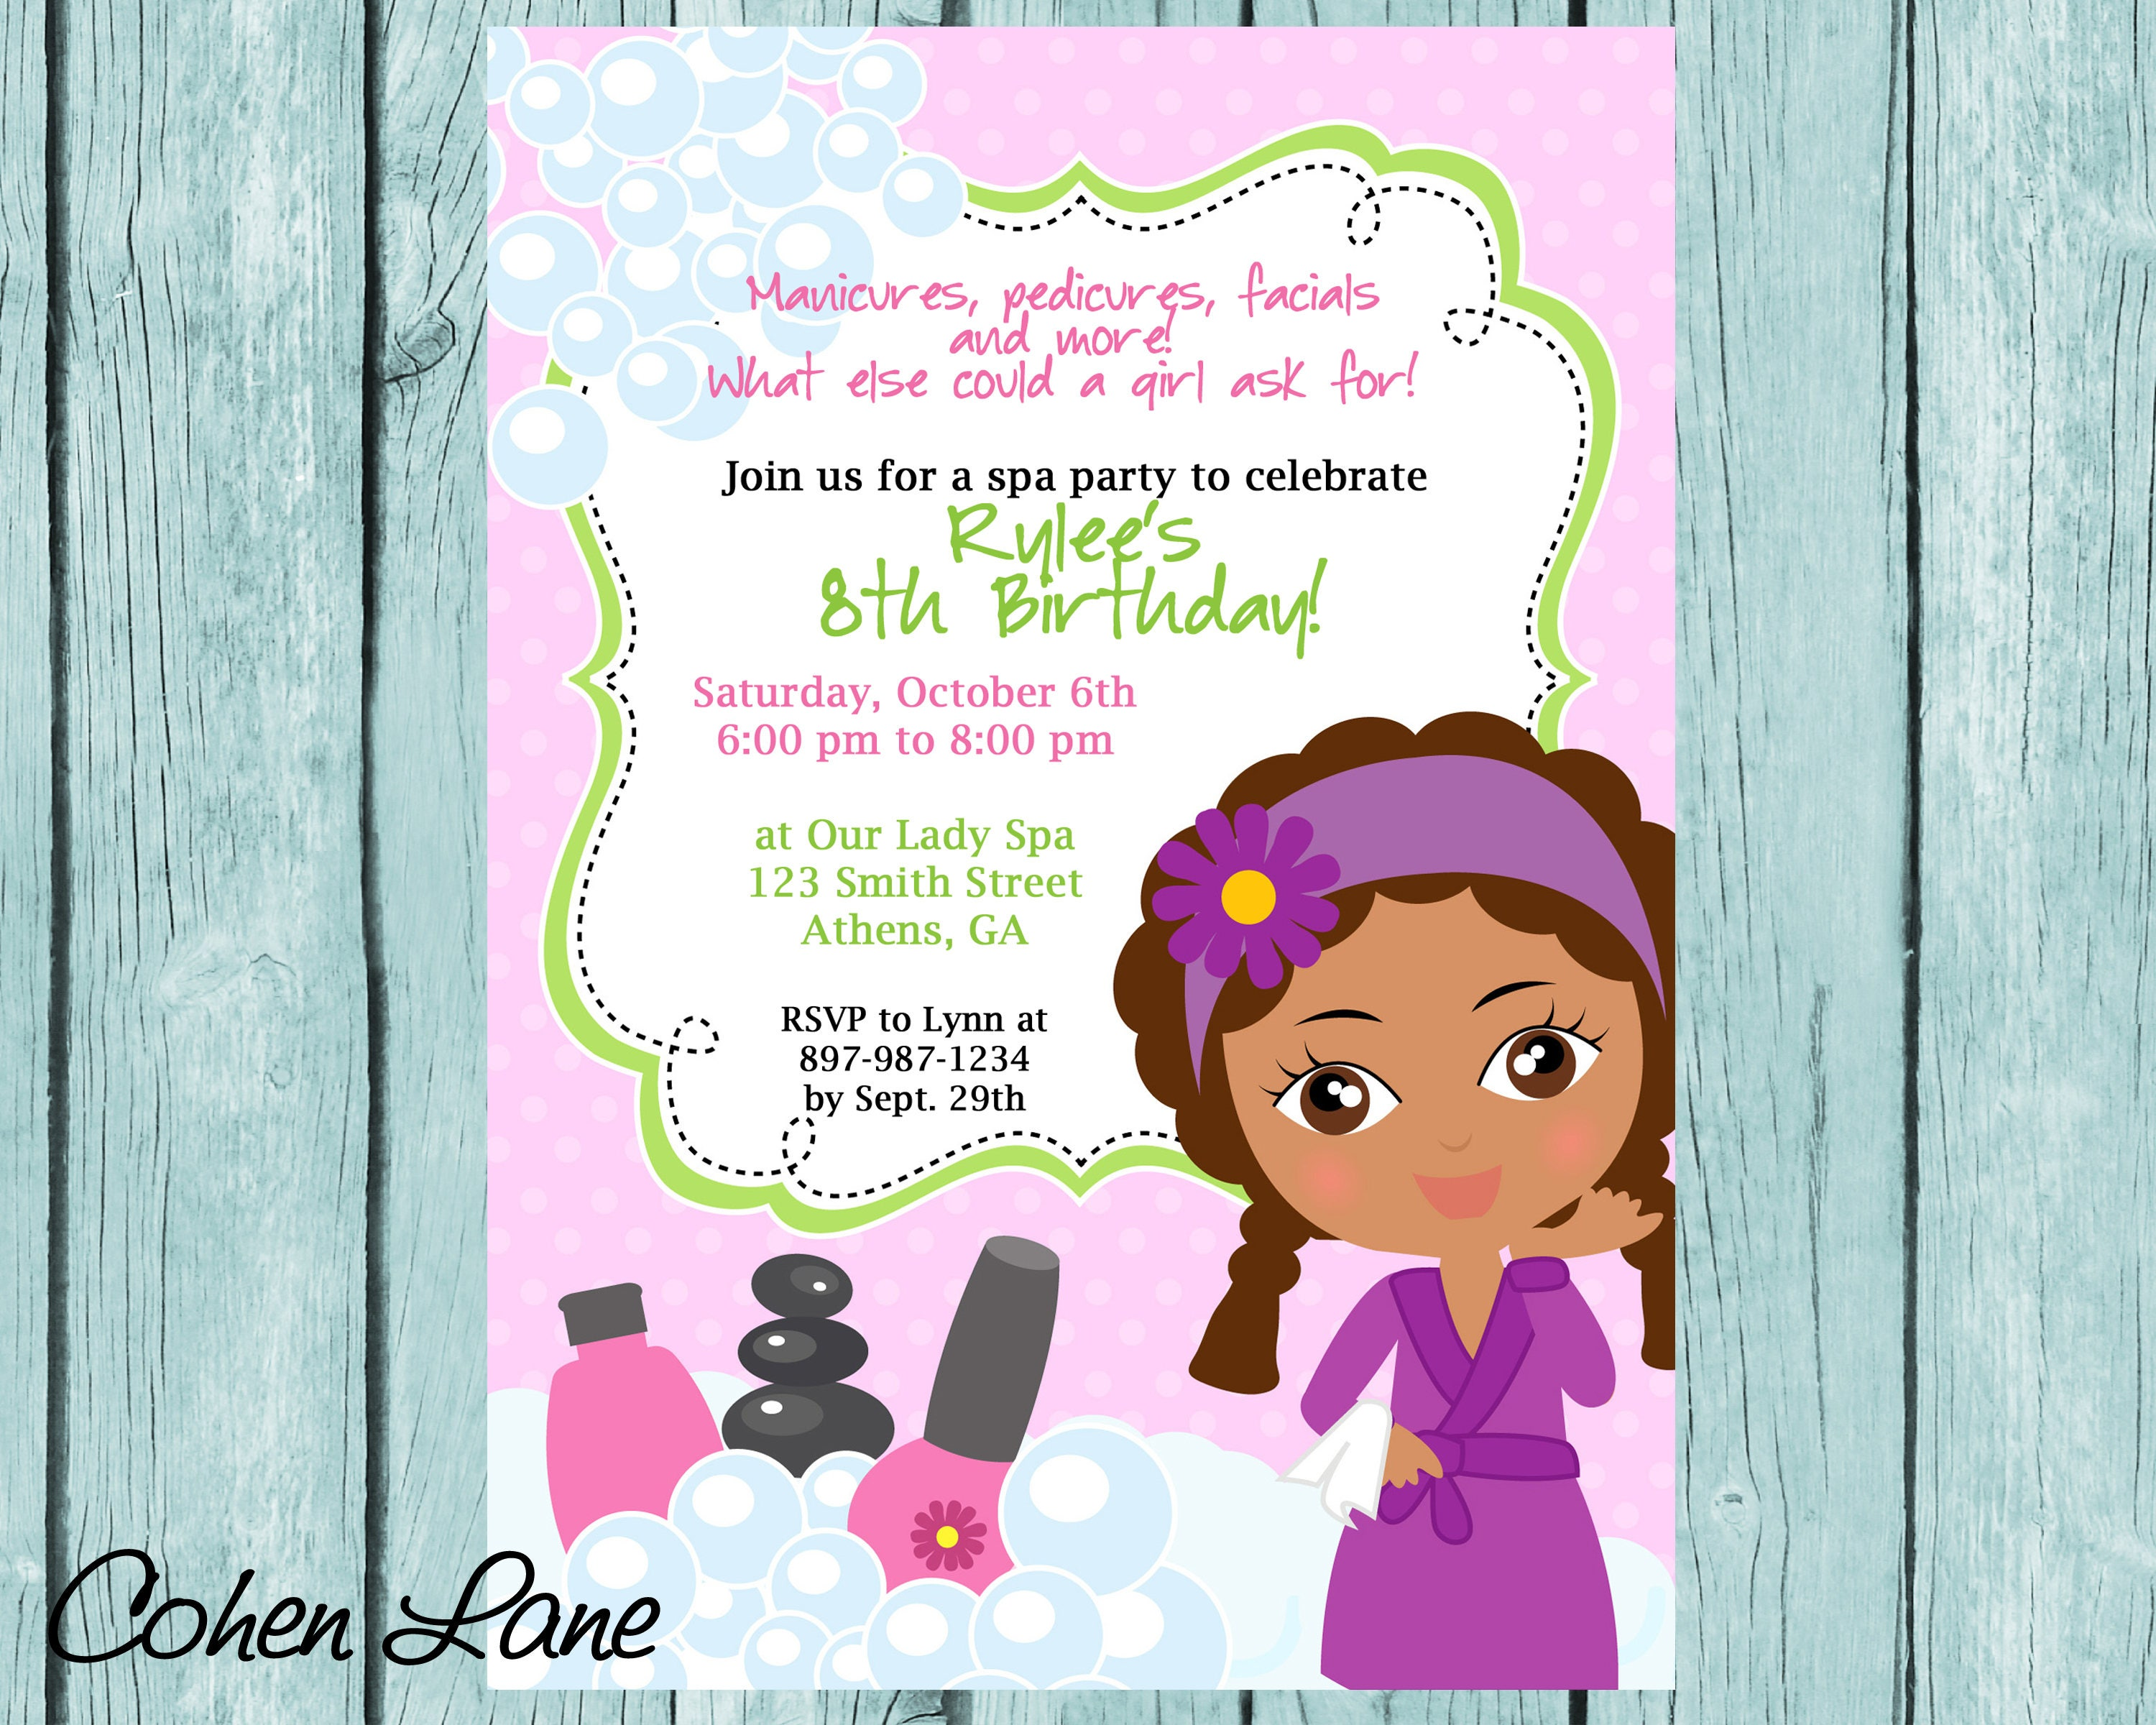 DIY Sassy Spa Party Invitation African American Little Girl - Birthday invitation for little girl